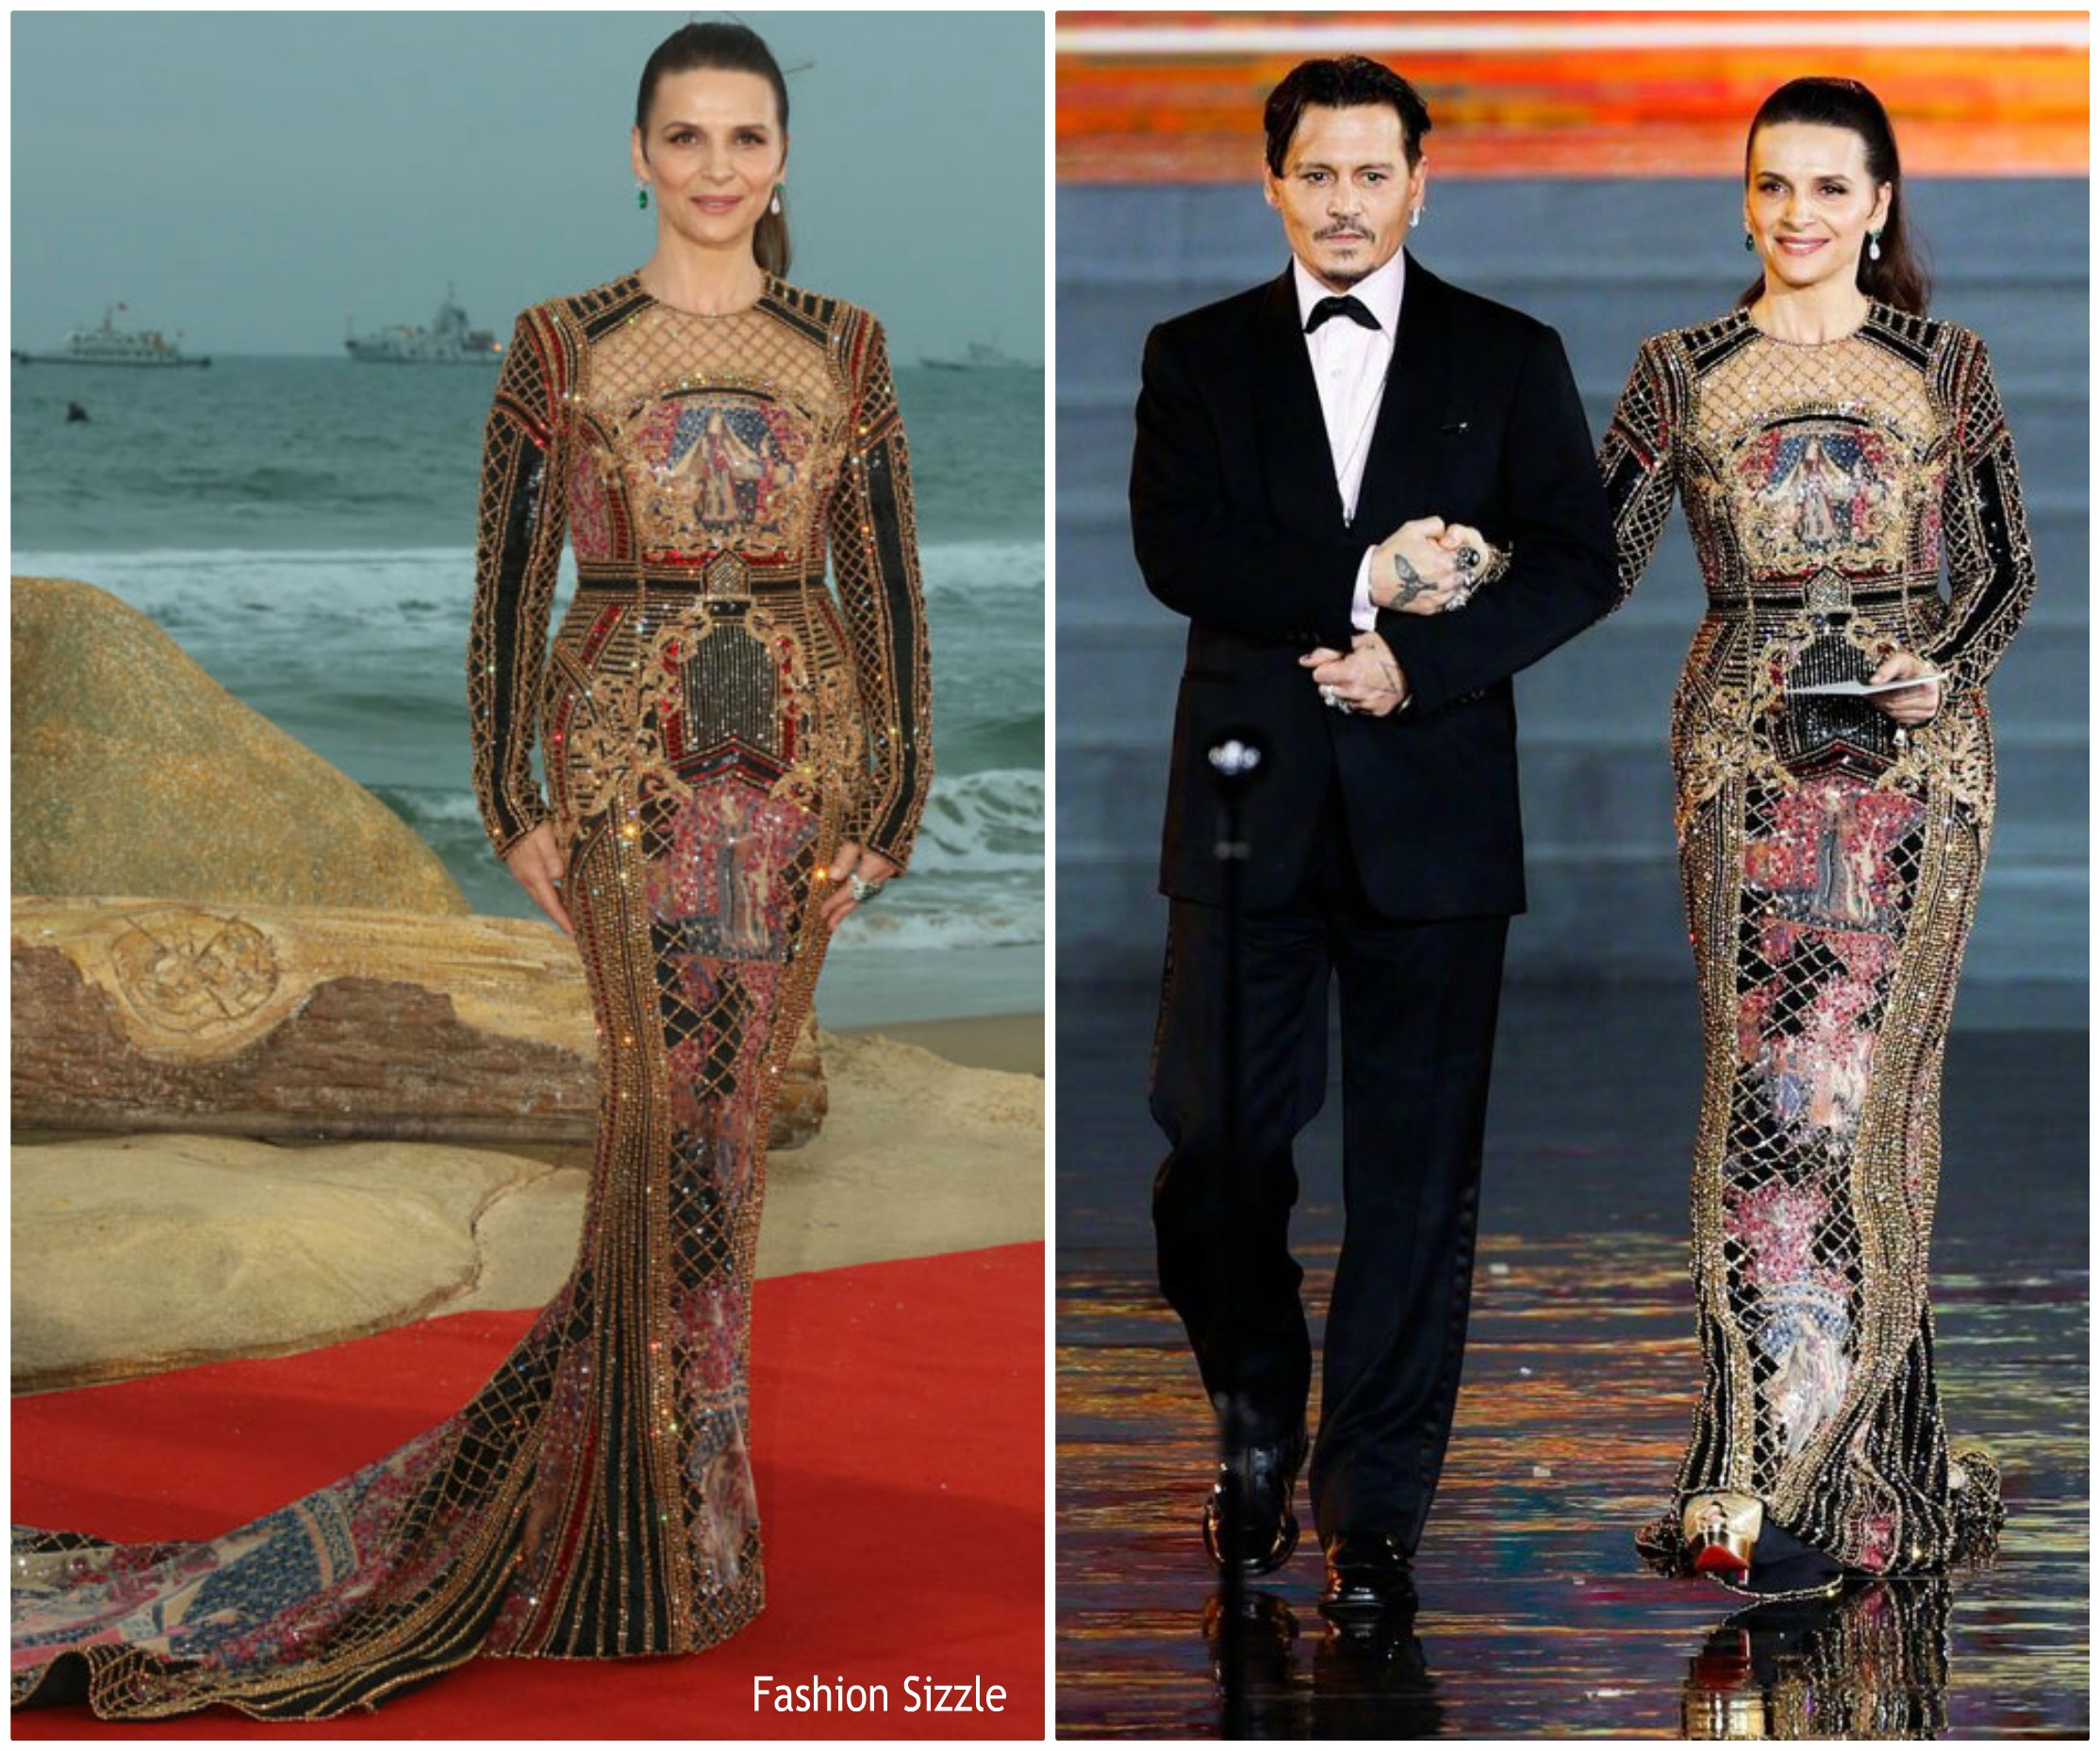 juliette-binoche-in-balmain-ist-hainan-international-film-festival-closing-ceremony